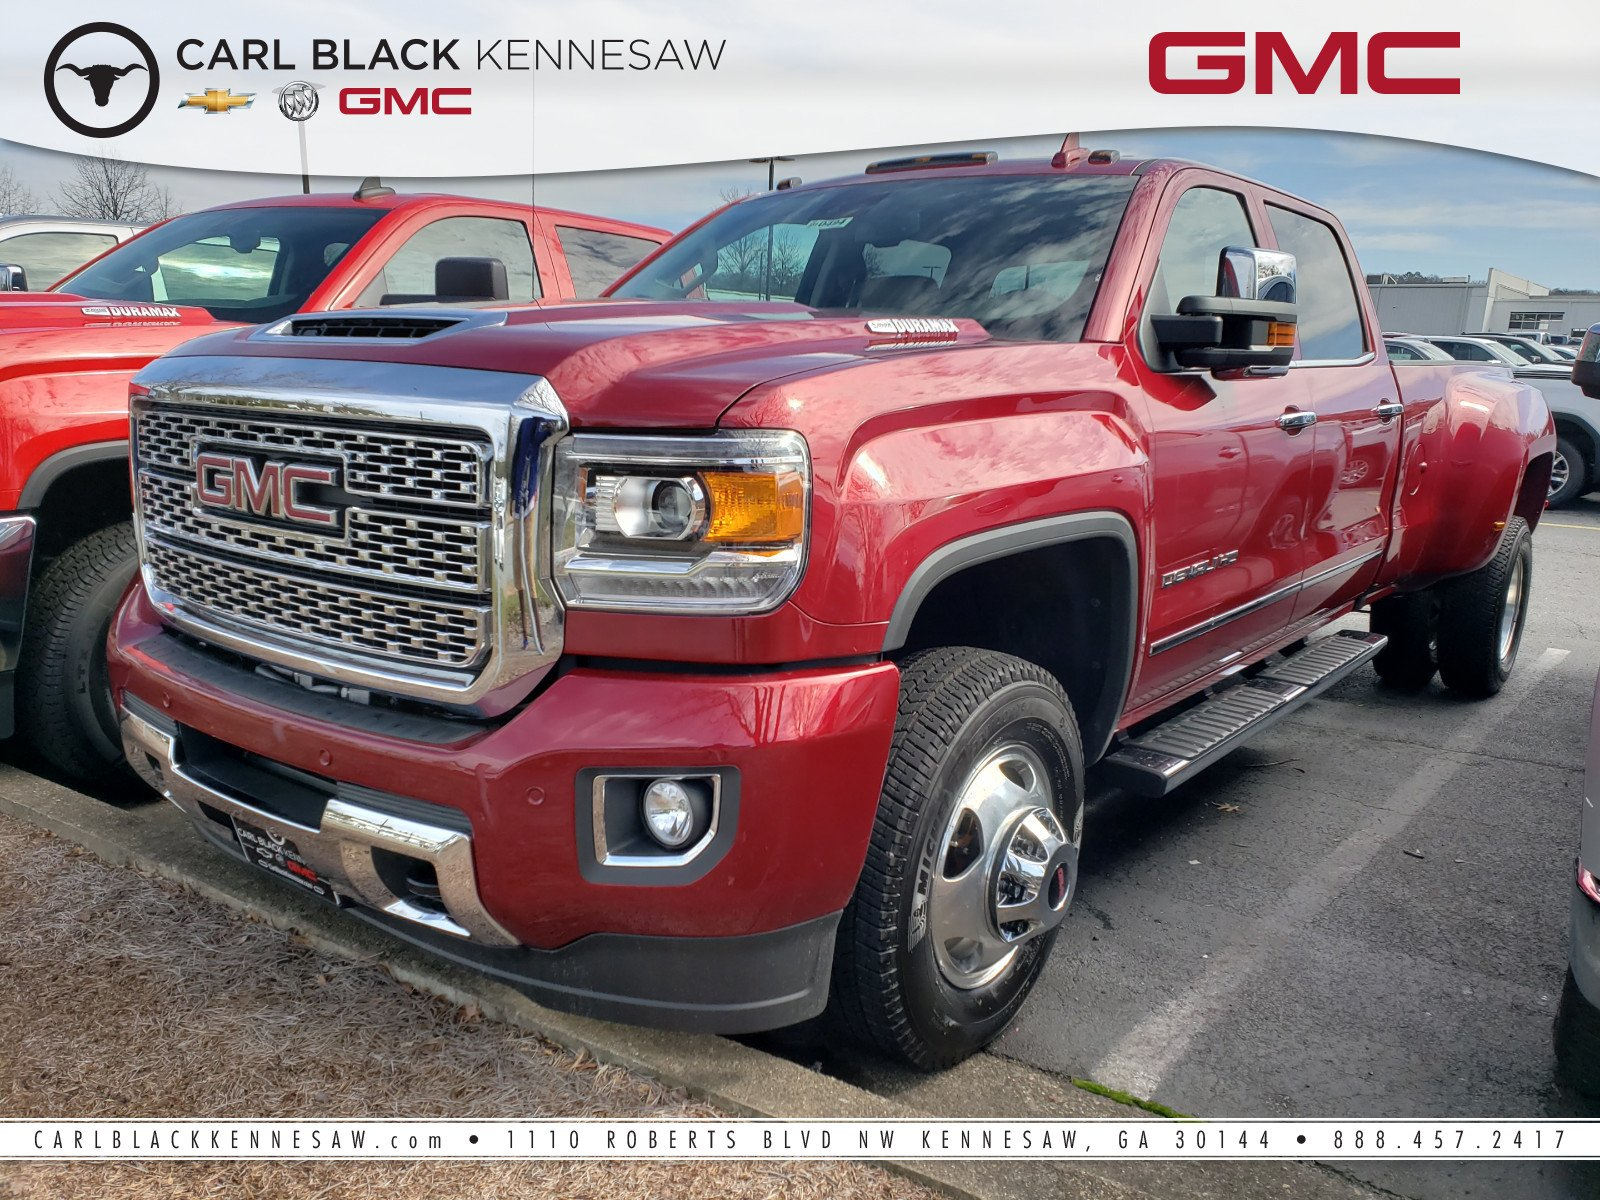 New 2019 Gmc Sierra 3500hd Denali Crew Cab Pickup In Kennesaw